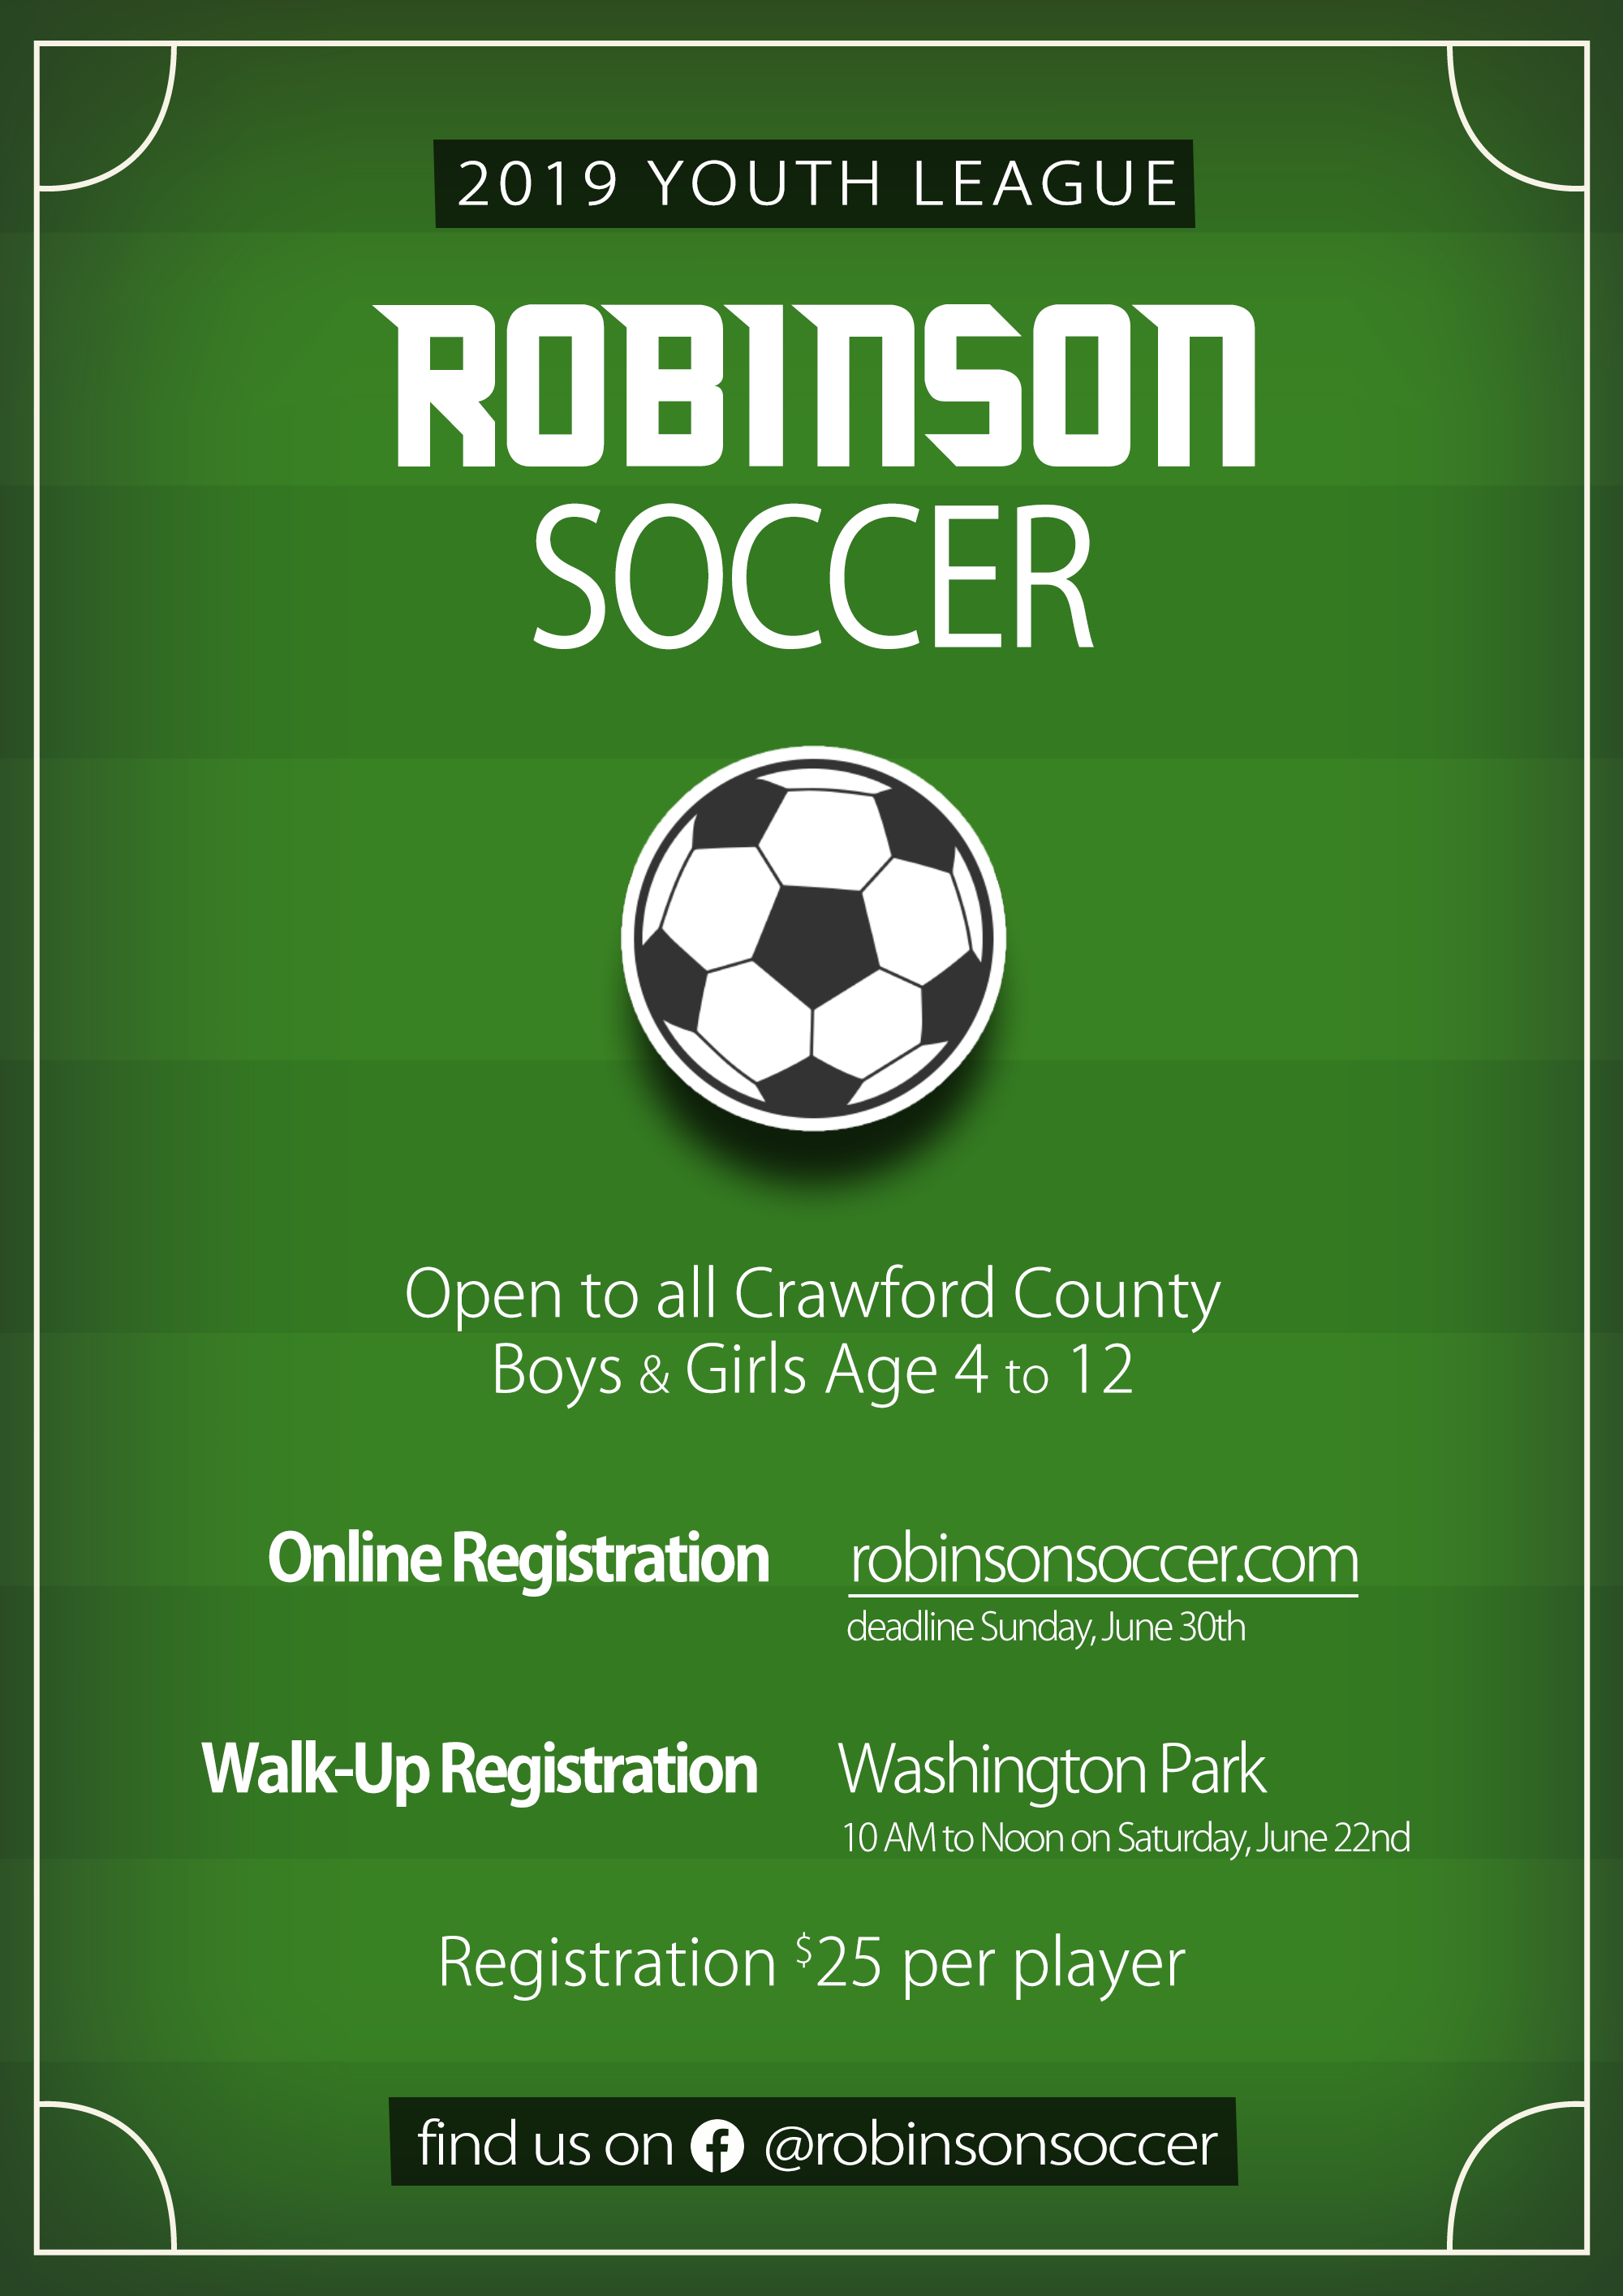 Robinson Soccer Youth League 2019